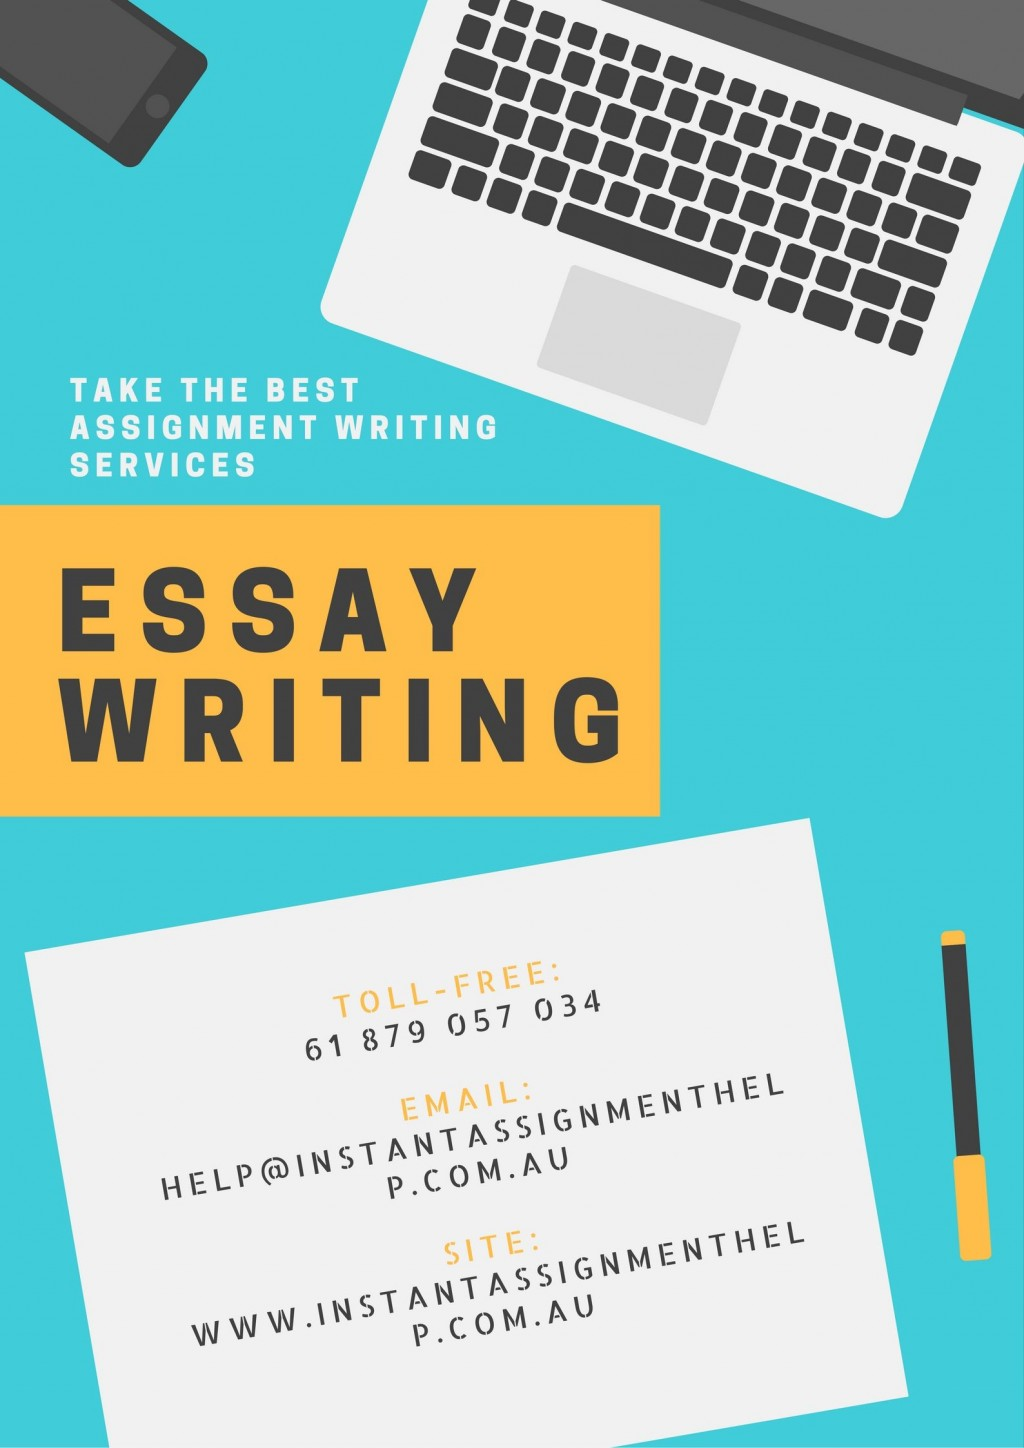 004 Essay Writing Help Example Frightening For Middle School Near Me Large